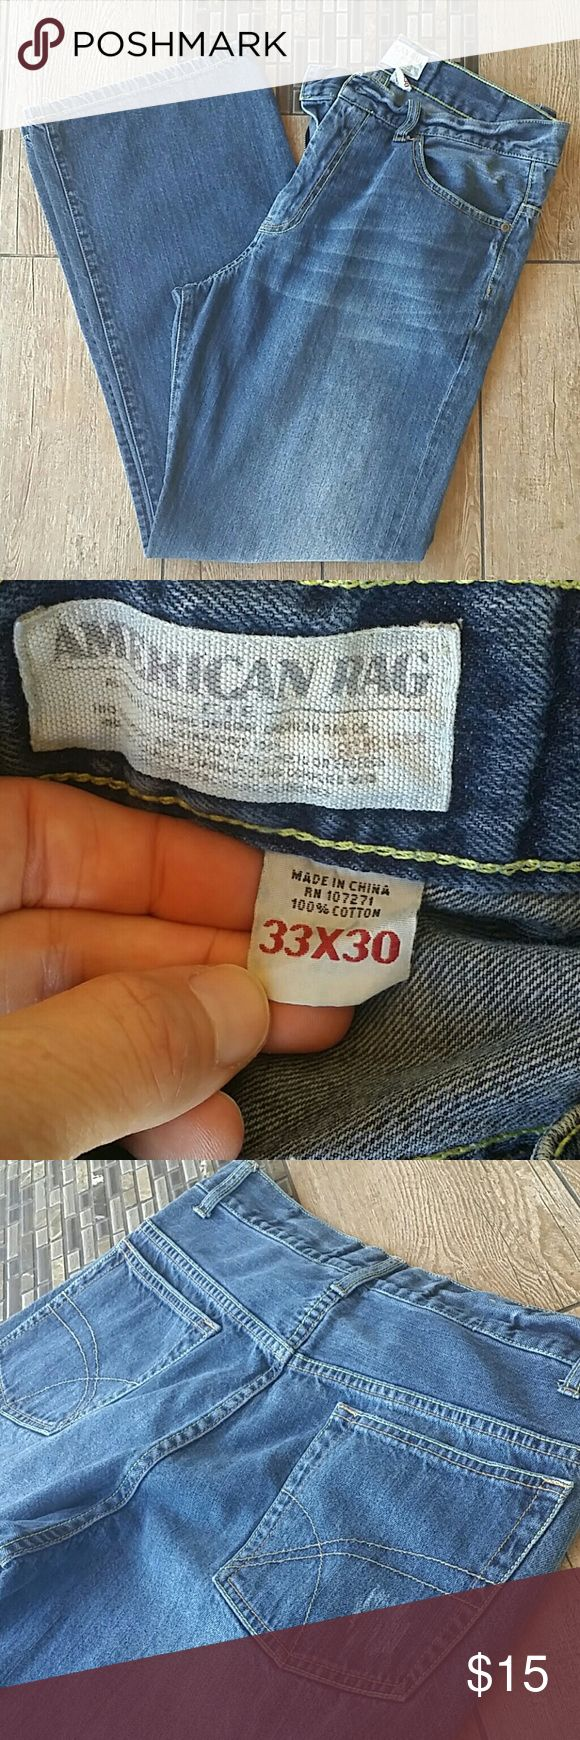 """American Rag Jeans Dark rinse American Rag jeans """"Destroyed"""" look on back pocket and spots throughout legs Slight fraying on bottom of jean 9.5"""" leg opening at bottom Smoke free home American Rag Jeans"""